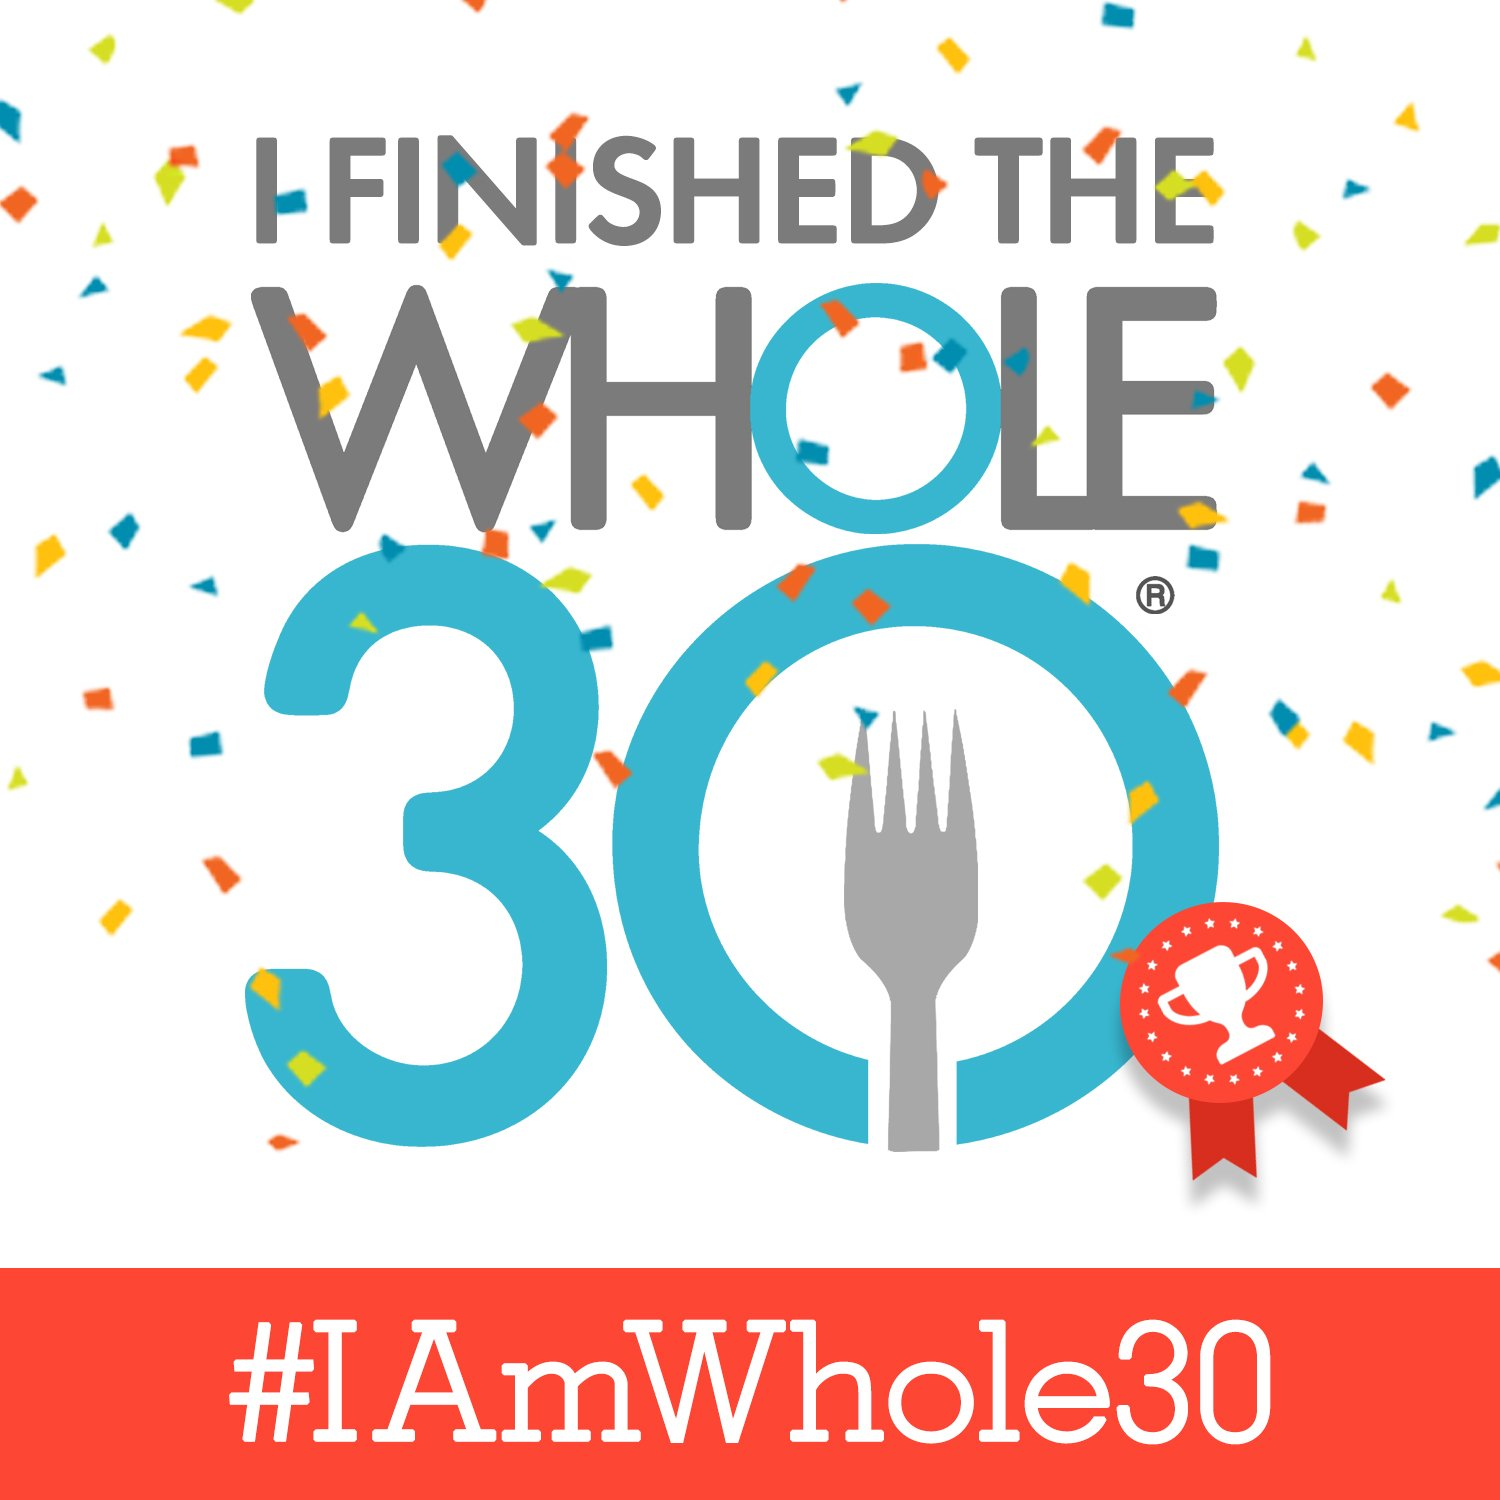 you finished the whole30